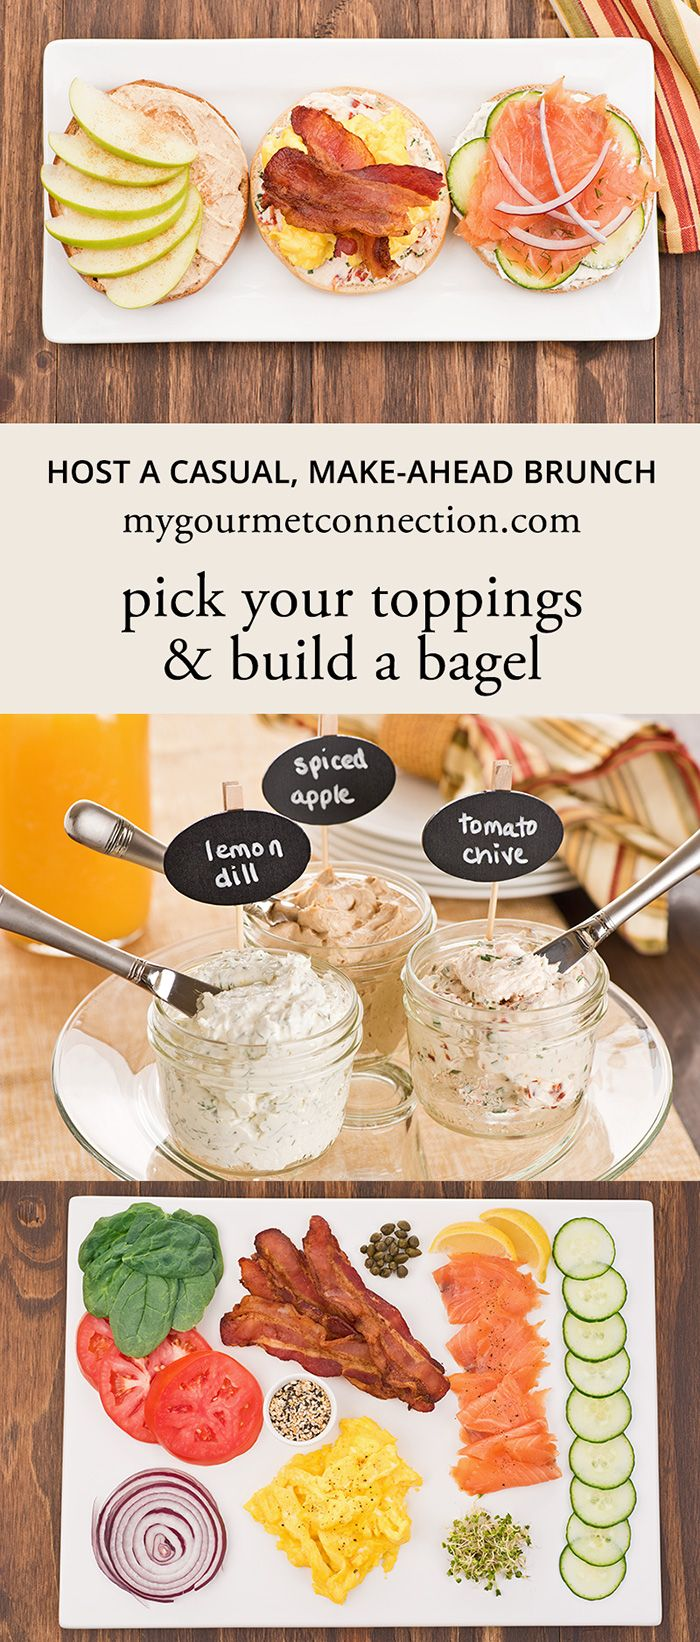 How To Host A Brunch ~ Homemade cream cheese spreads and an assortment of toppings for a make-ahead Build-Your-Own Bagel Buffet w/ @cbcbreads @AOL_Lifestyle #CBCBreakfast #sponsored